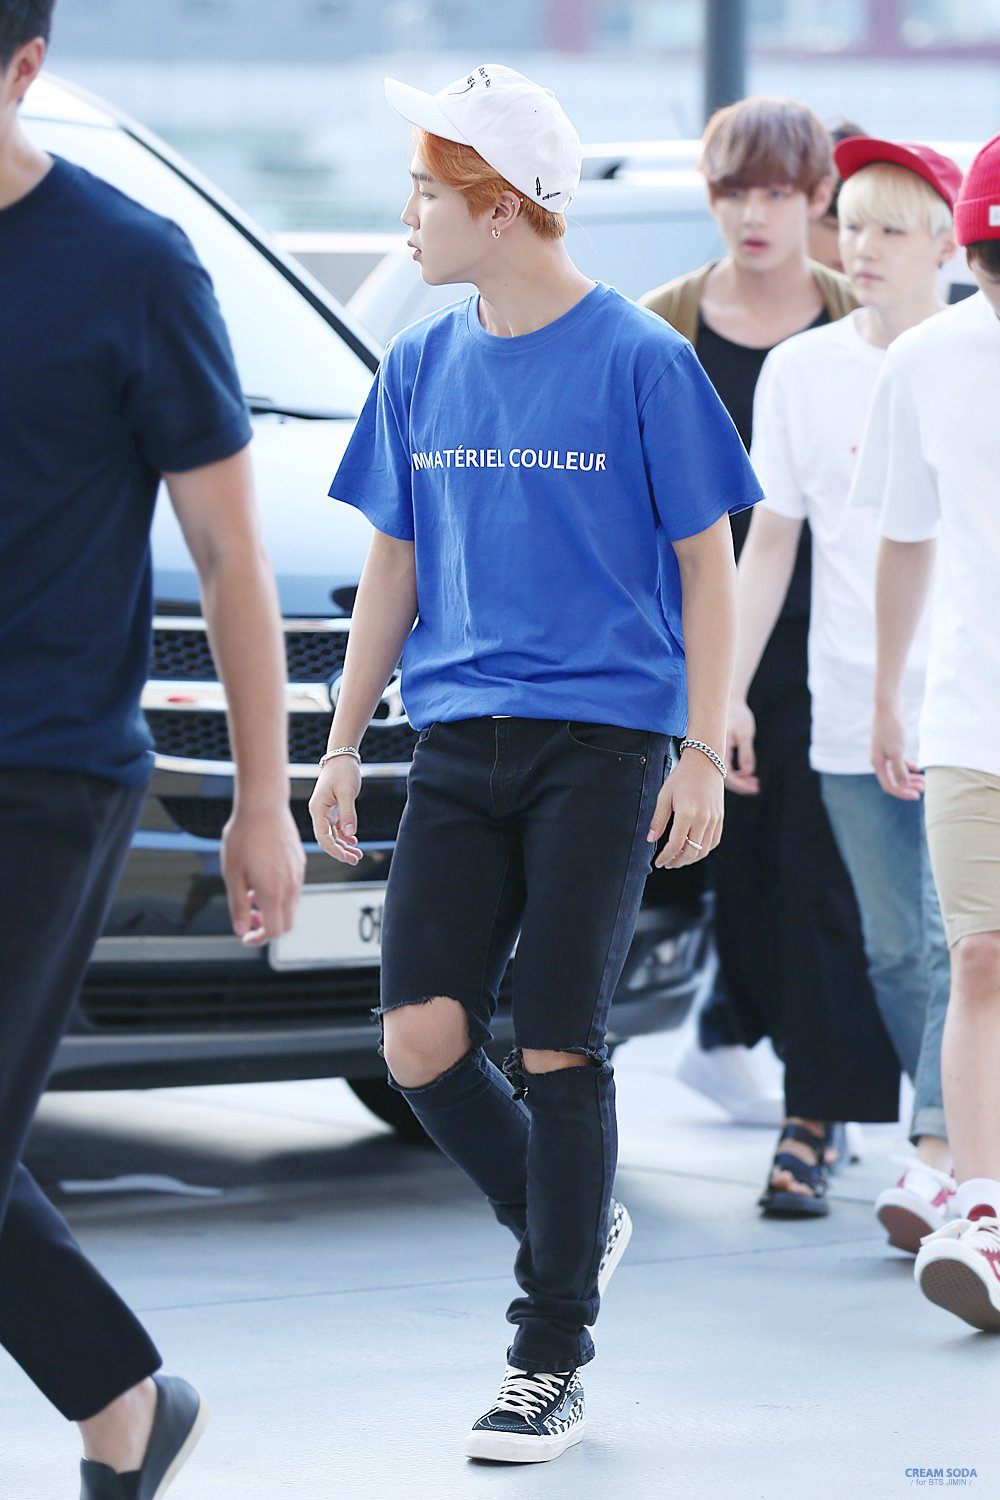 22 Pictures of BTS Jimin In Jeans You Didnu0026#39;t Know You Needed u2014 Koreaboo